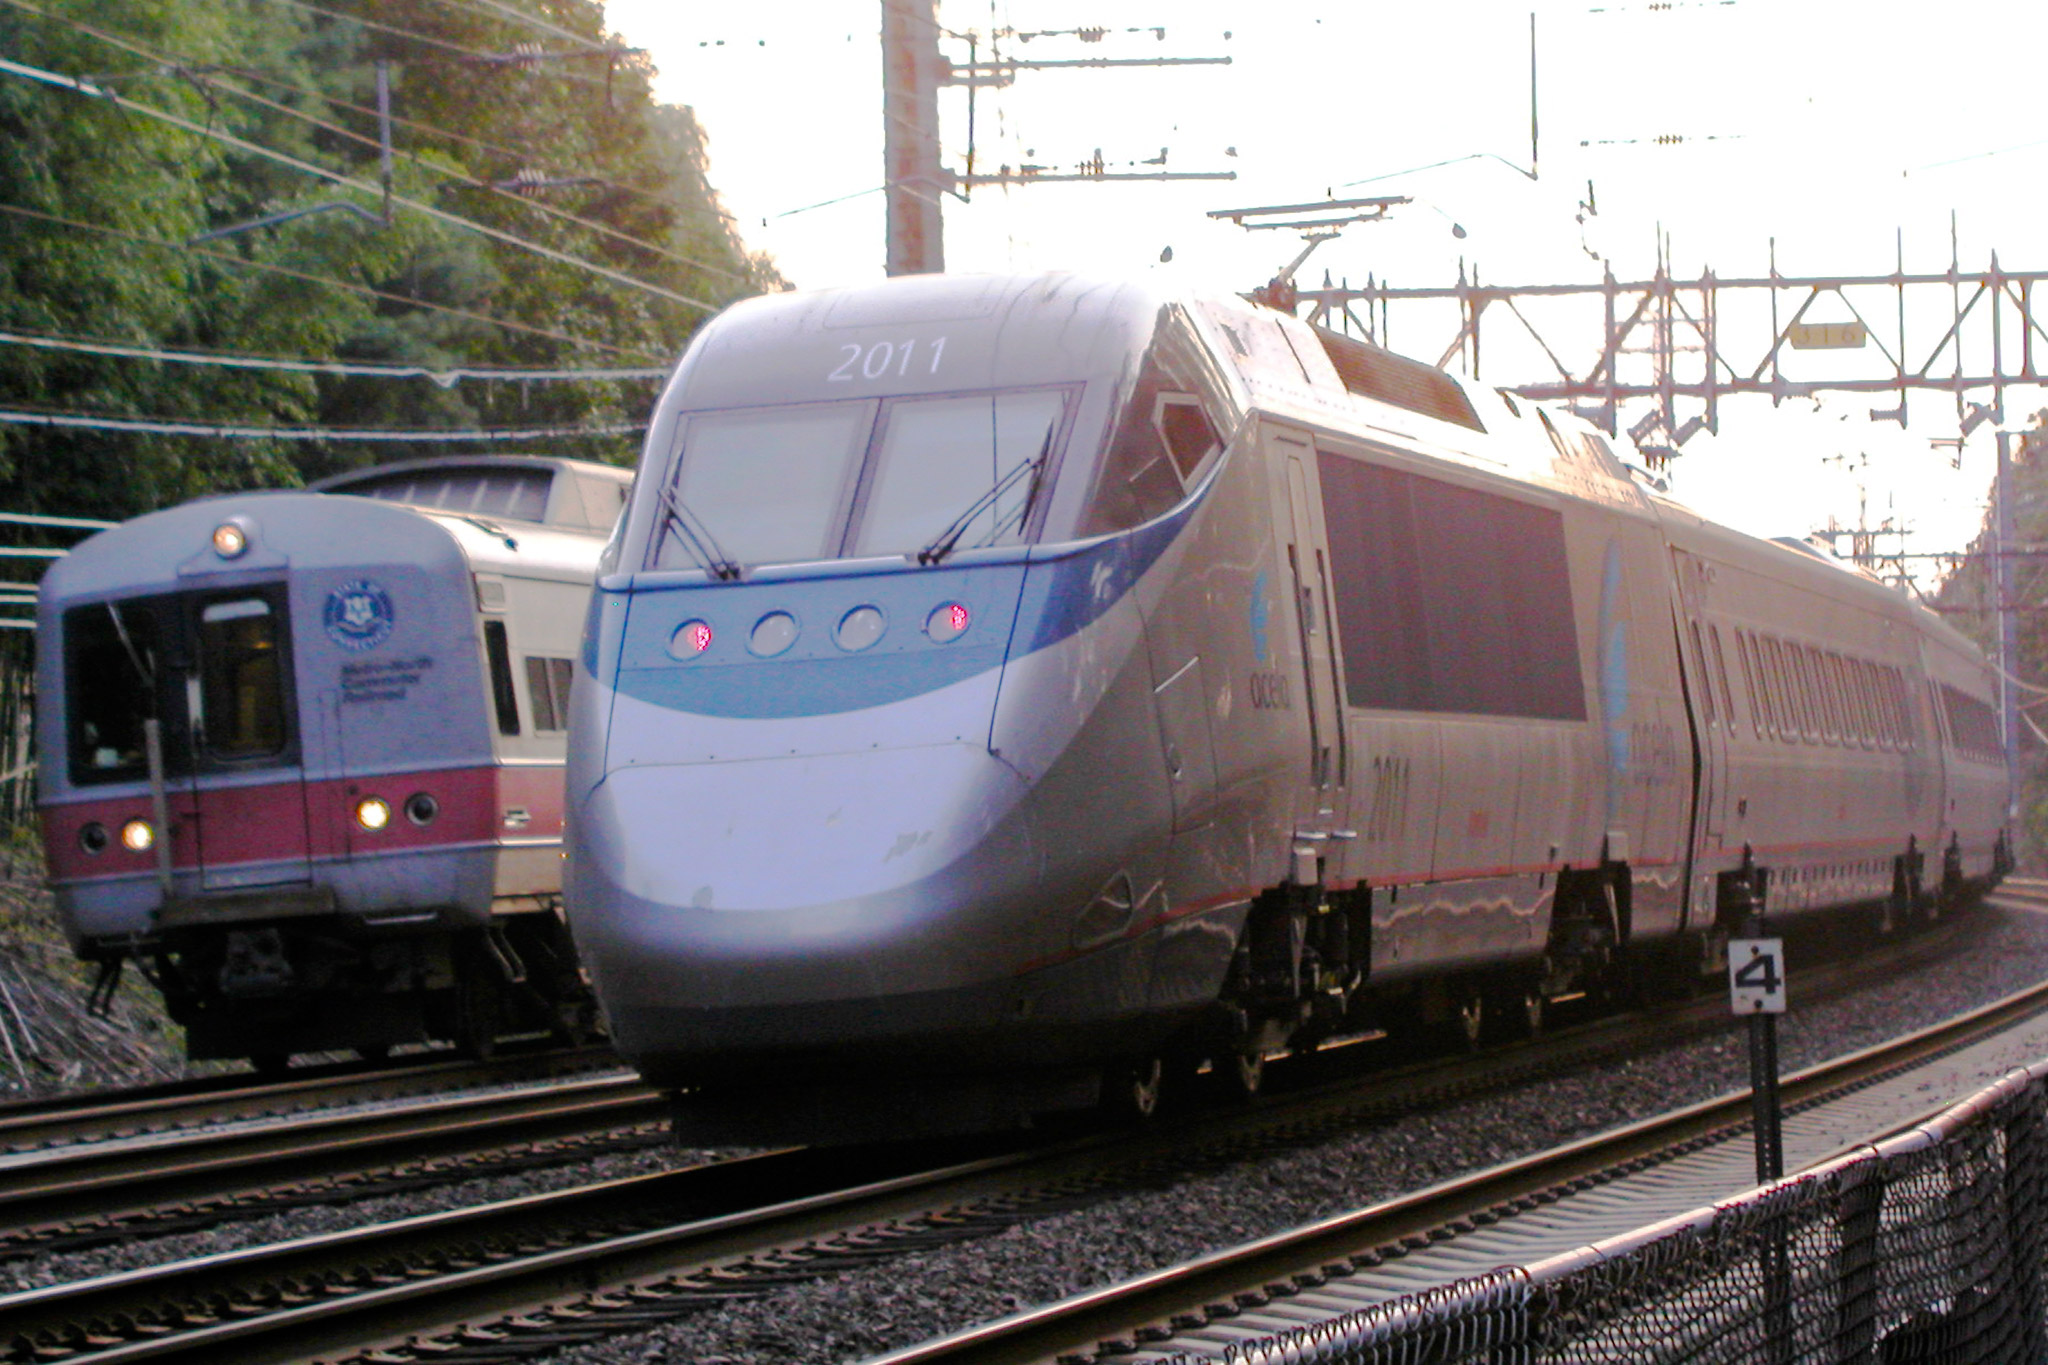 Muoversi in treno a New York - Foto https://commons.wikimedia.org/wiki/File:Acela_Express_and_Metro-North_railcar.jpg